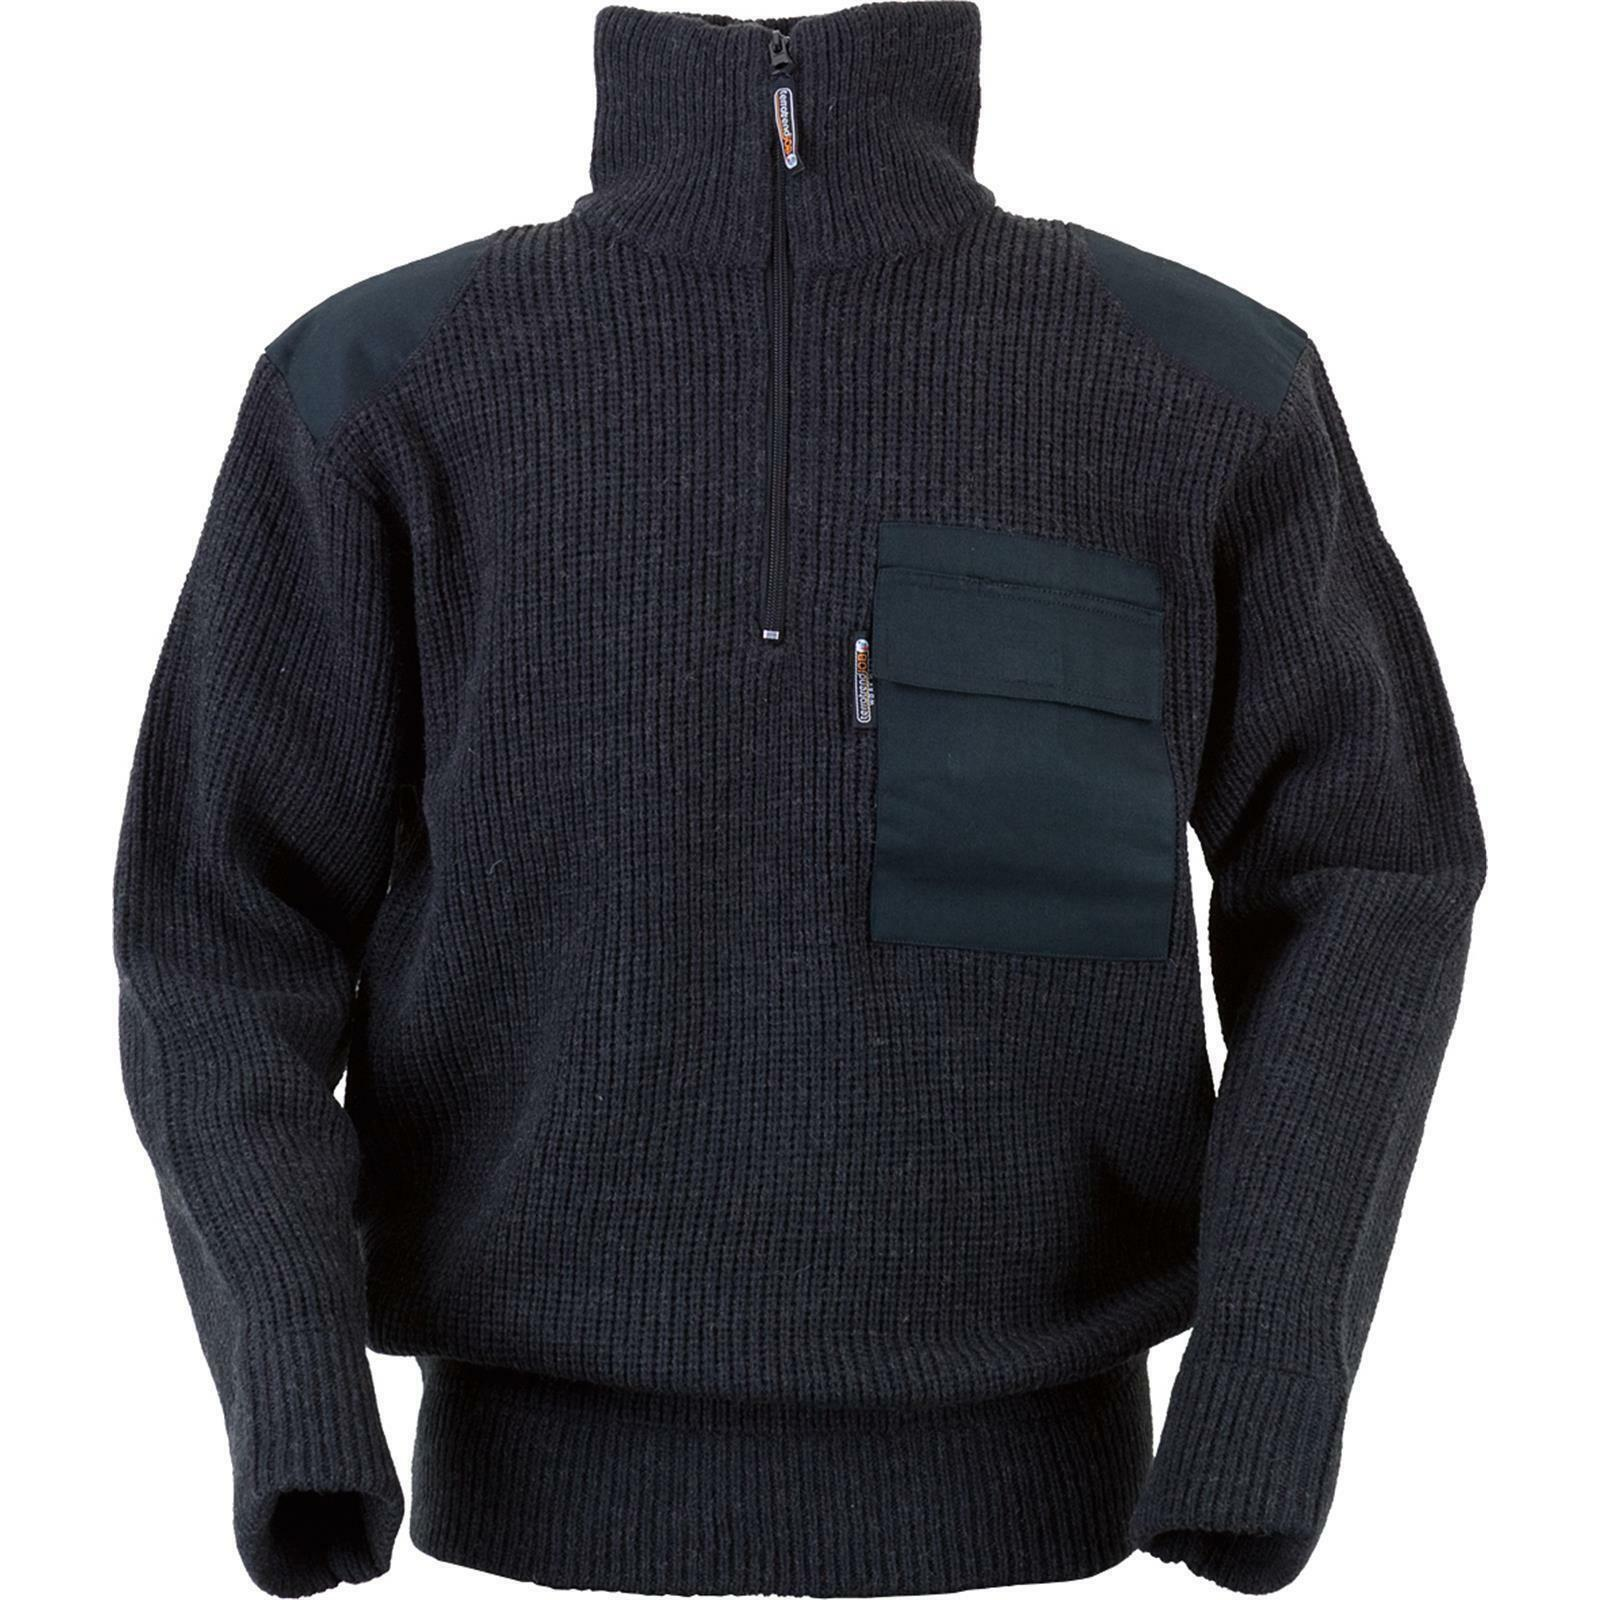 Troyer Troyer Troyer Pullover grau Gr. M | Deutschland Outlet  ed9aa0